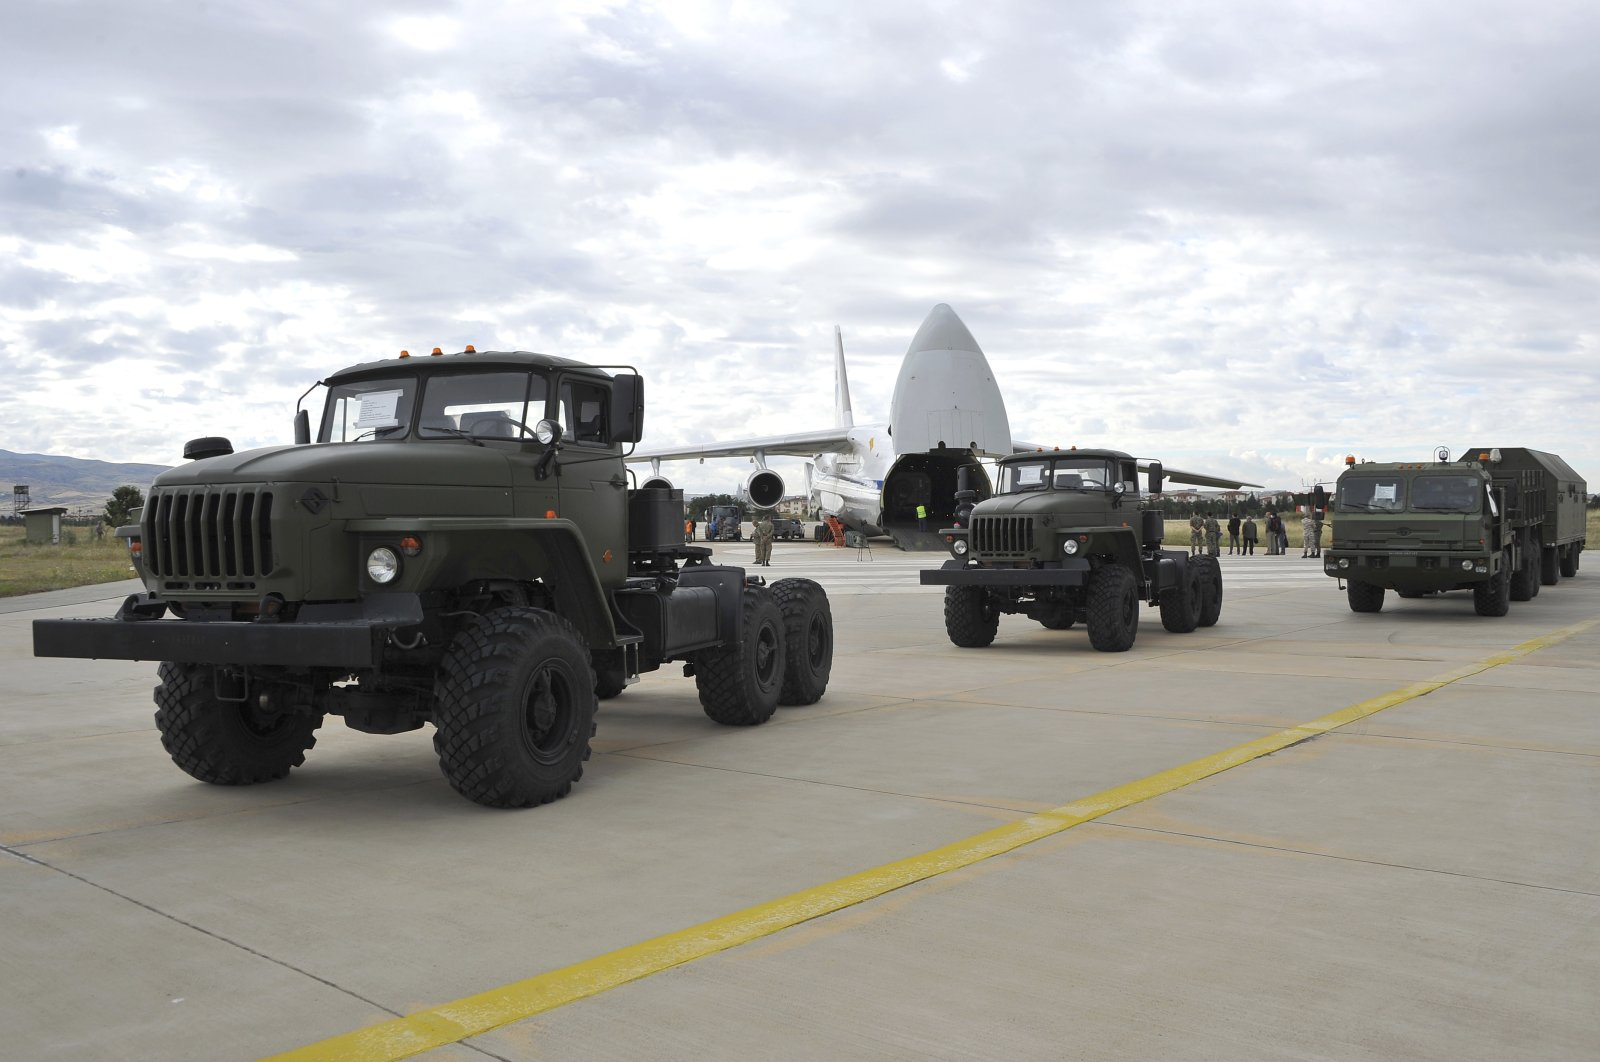 Military vehicles, equipment and parts of the S-400 air defense systems are seen on the tarmac after they were unloaded from a Russian transport aircraft, at Mürted military airport in Ankara, Turkey, July 12, 2019. (AP Photo)